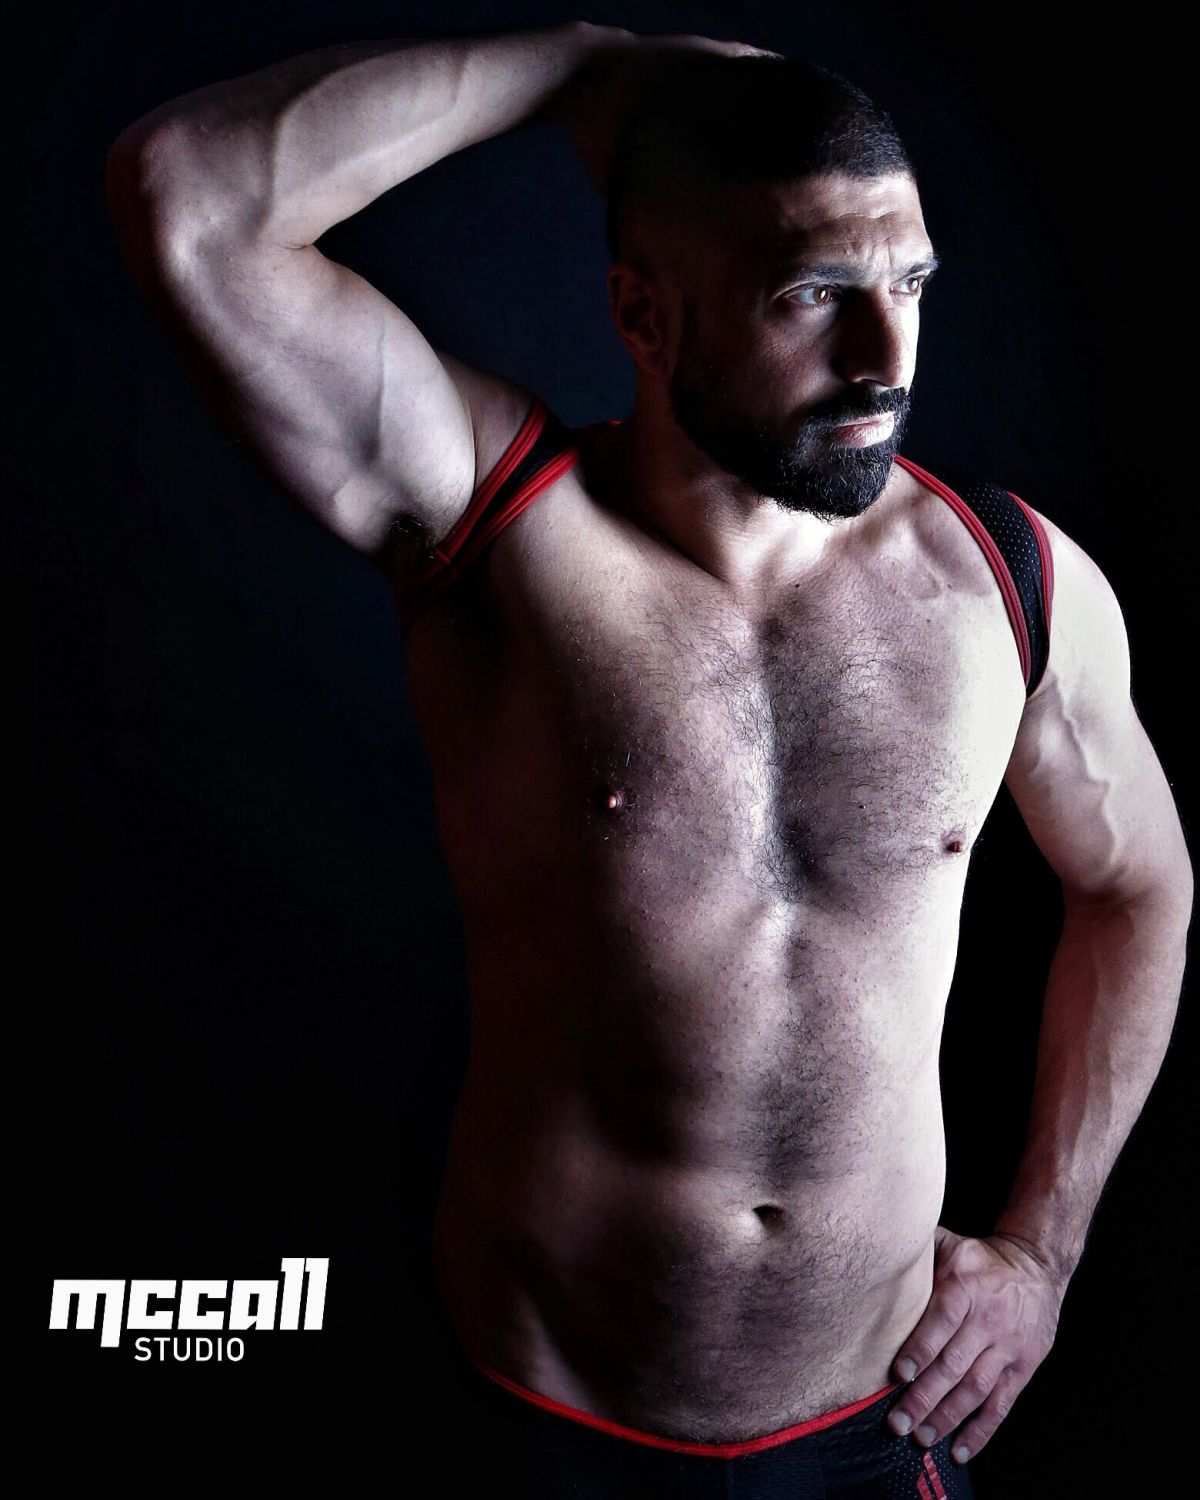 MARCO NAPOLI OnlyFans Leaked Photos and Videos